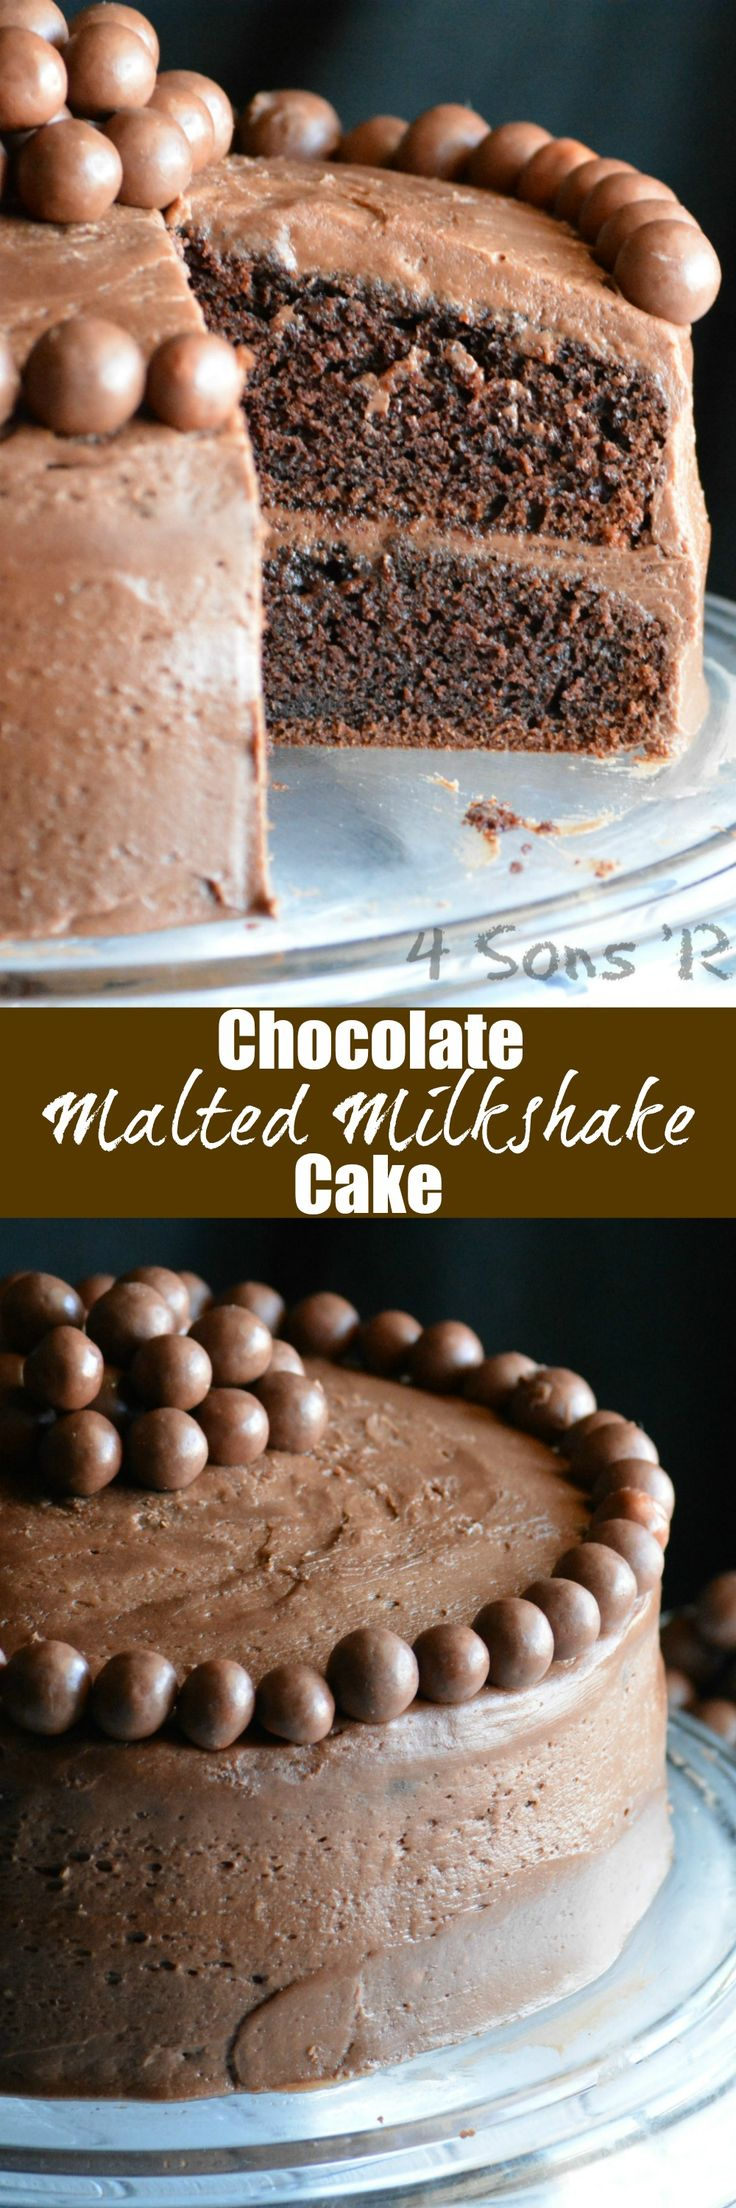 A moist and fluffy chocolate layer cake with malted chocolate frosting in between every layer-- the Chocolate Malted Milkshake Cake tastes just like the Chocolate Malted Milkshakes you loved as a kid. #SummerDessertWeek #ad